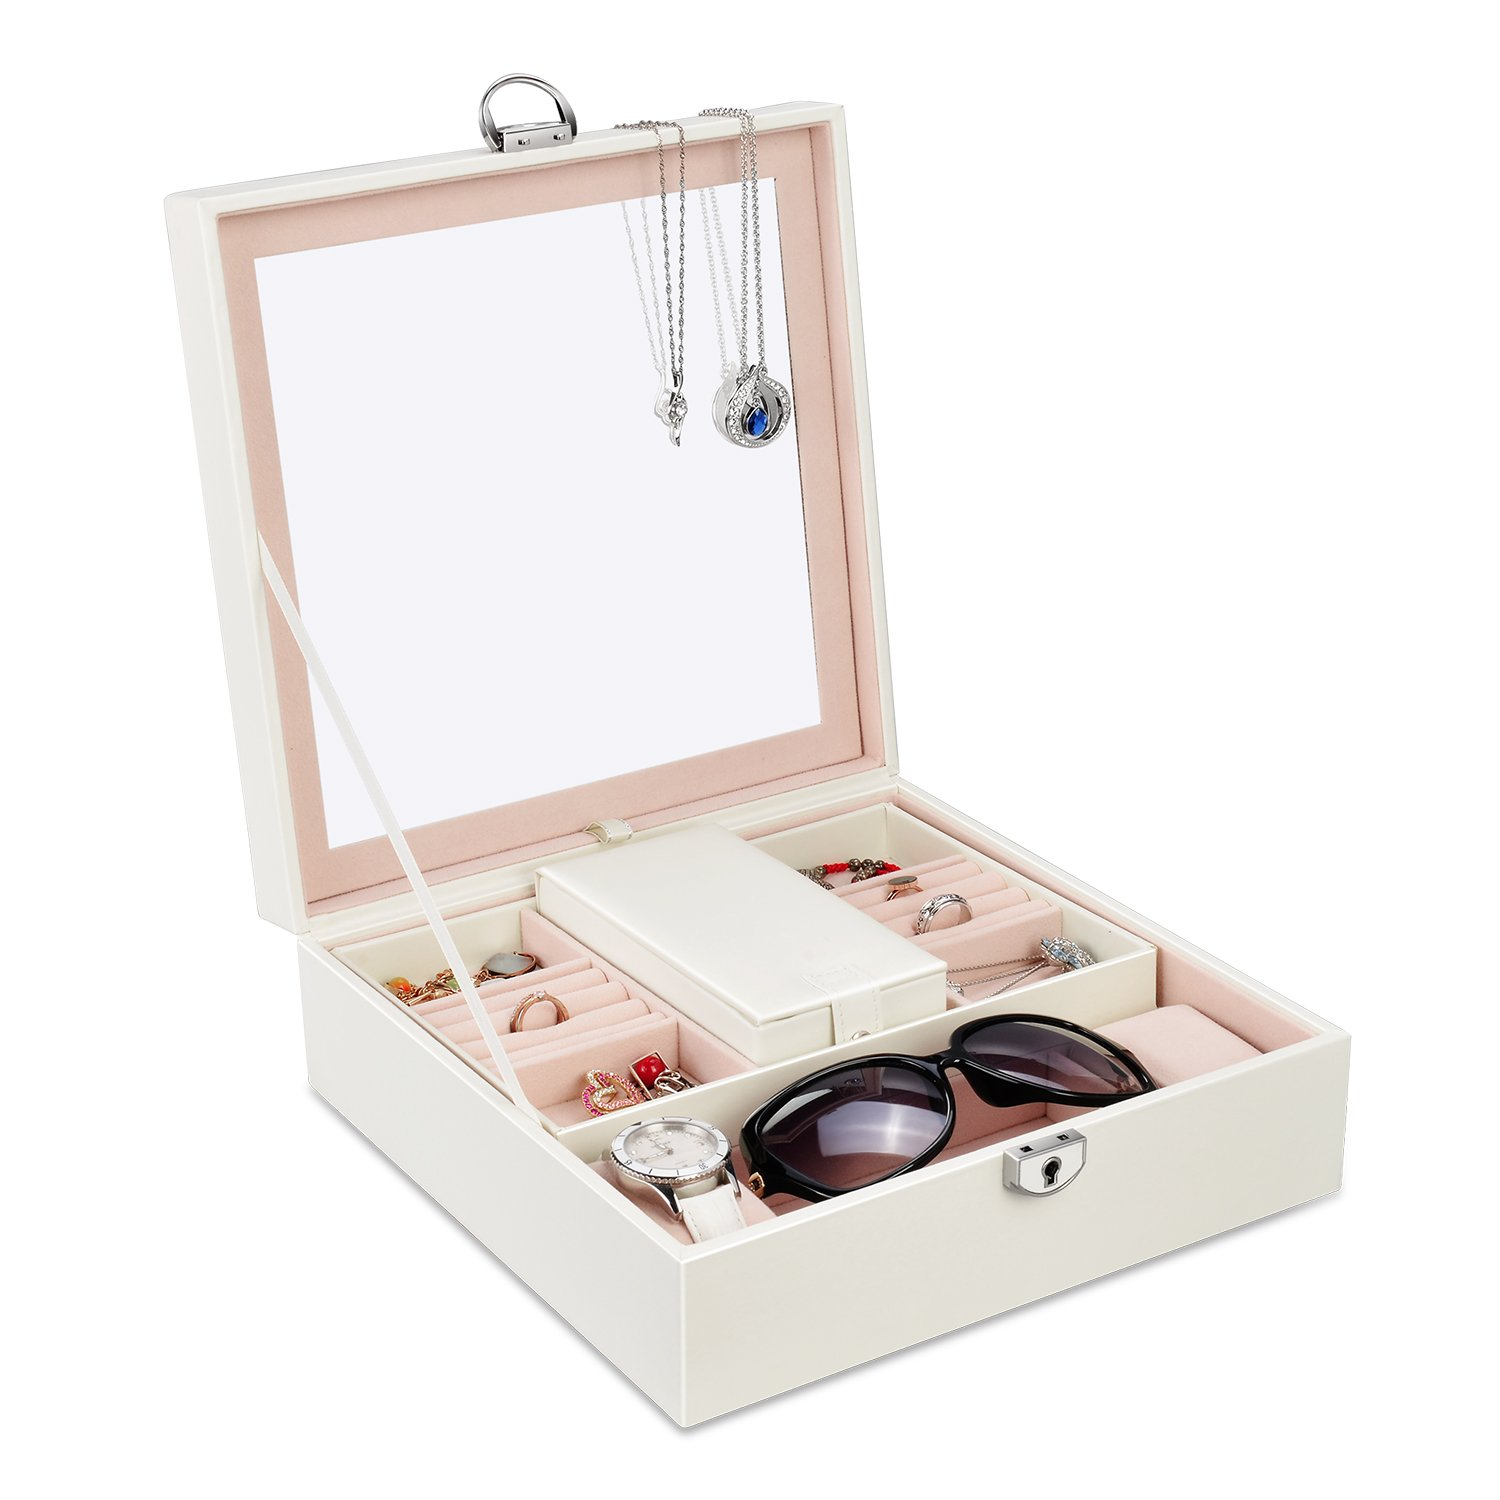 Lesfit Leather Jewelry Box, Lockable Jewelry Display Case Storage Organizer Box for Bracelets, Necklace, Earrings, Rings and Watches with Big Mirror, White